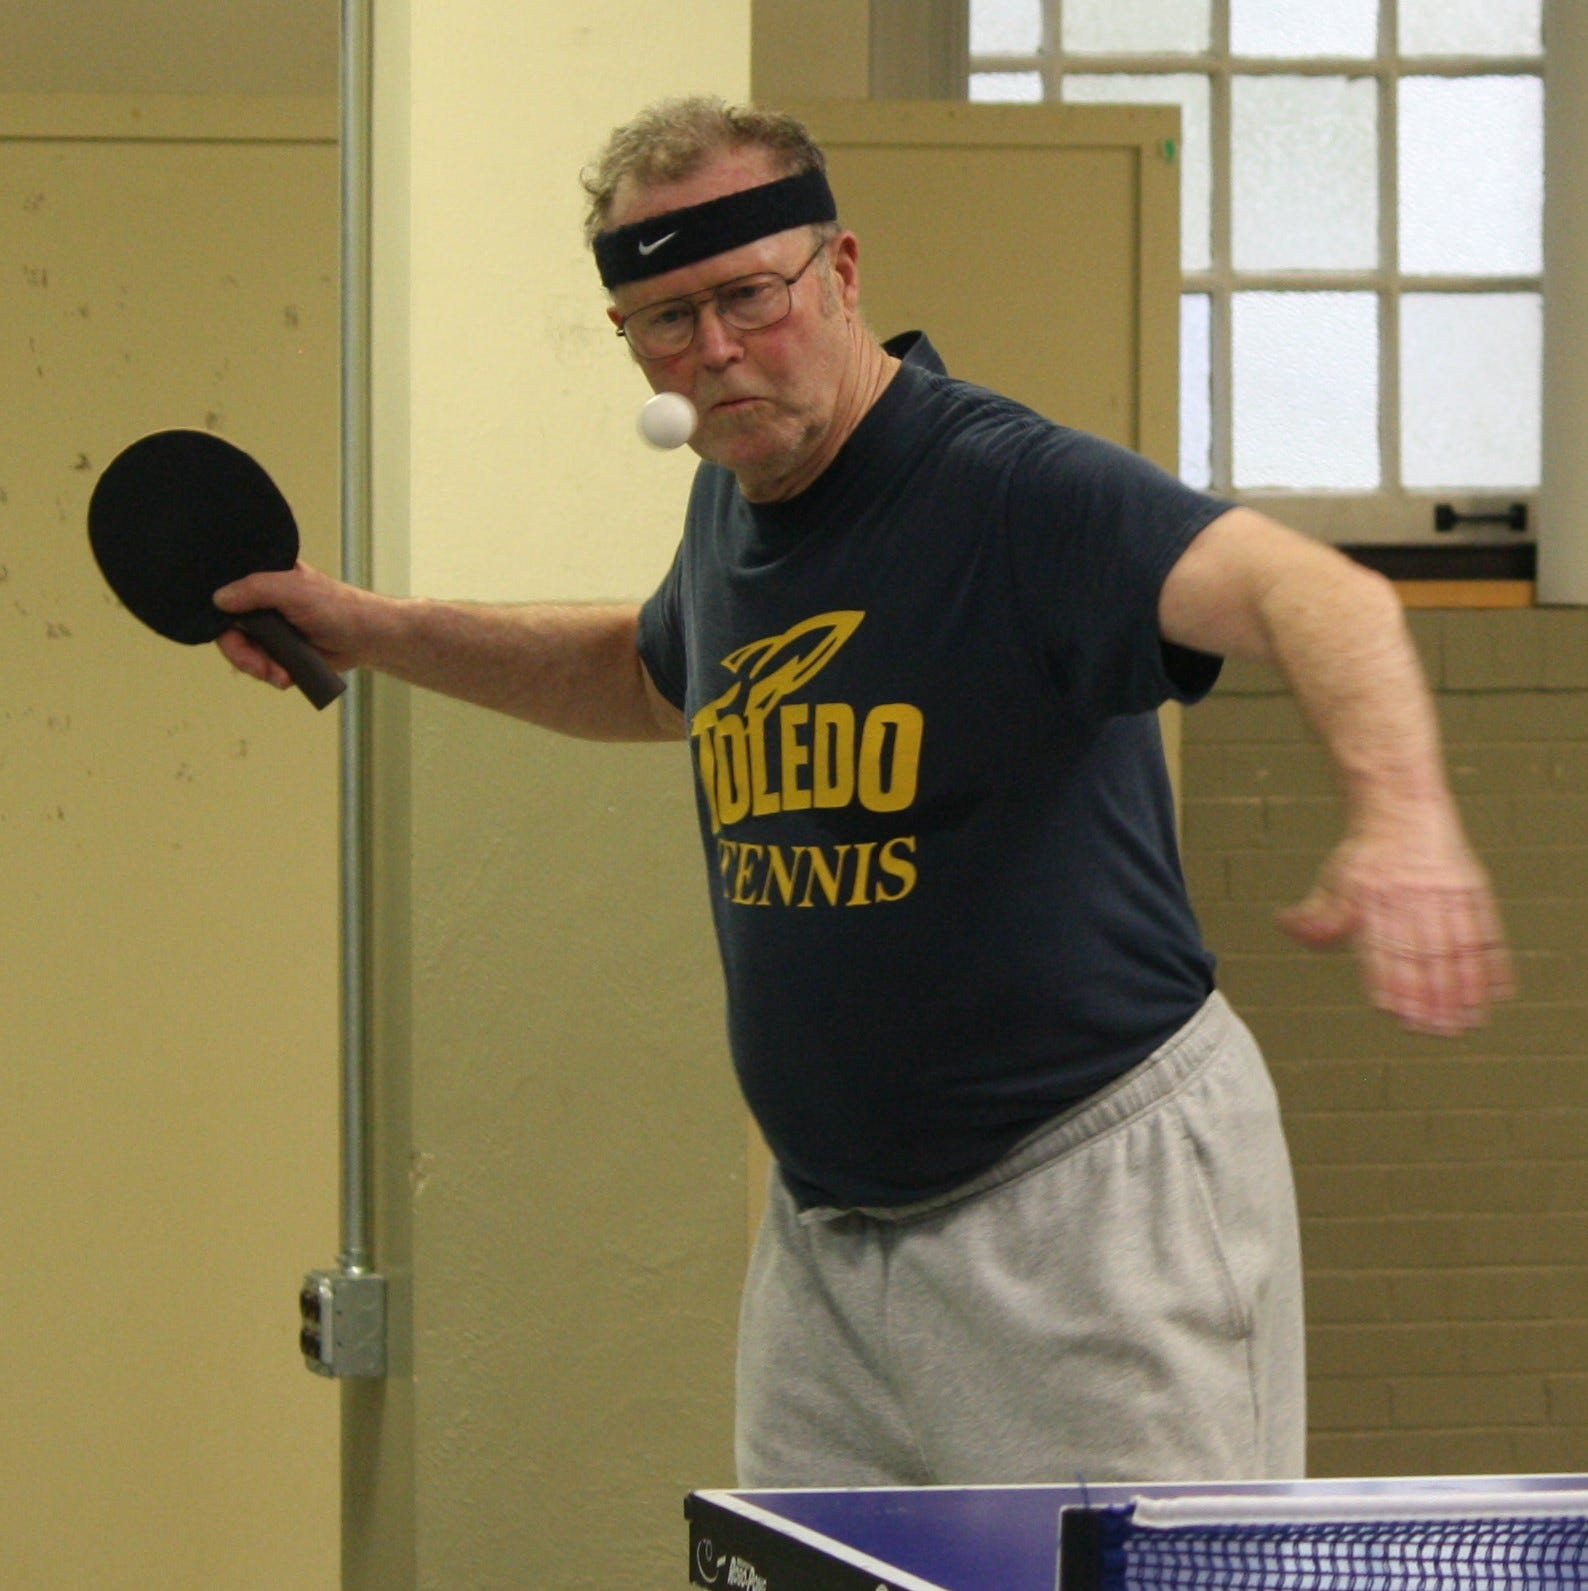 King pong: Local club sparks interest, success in table tennis